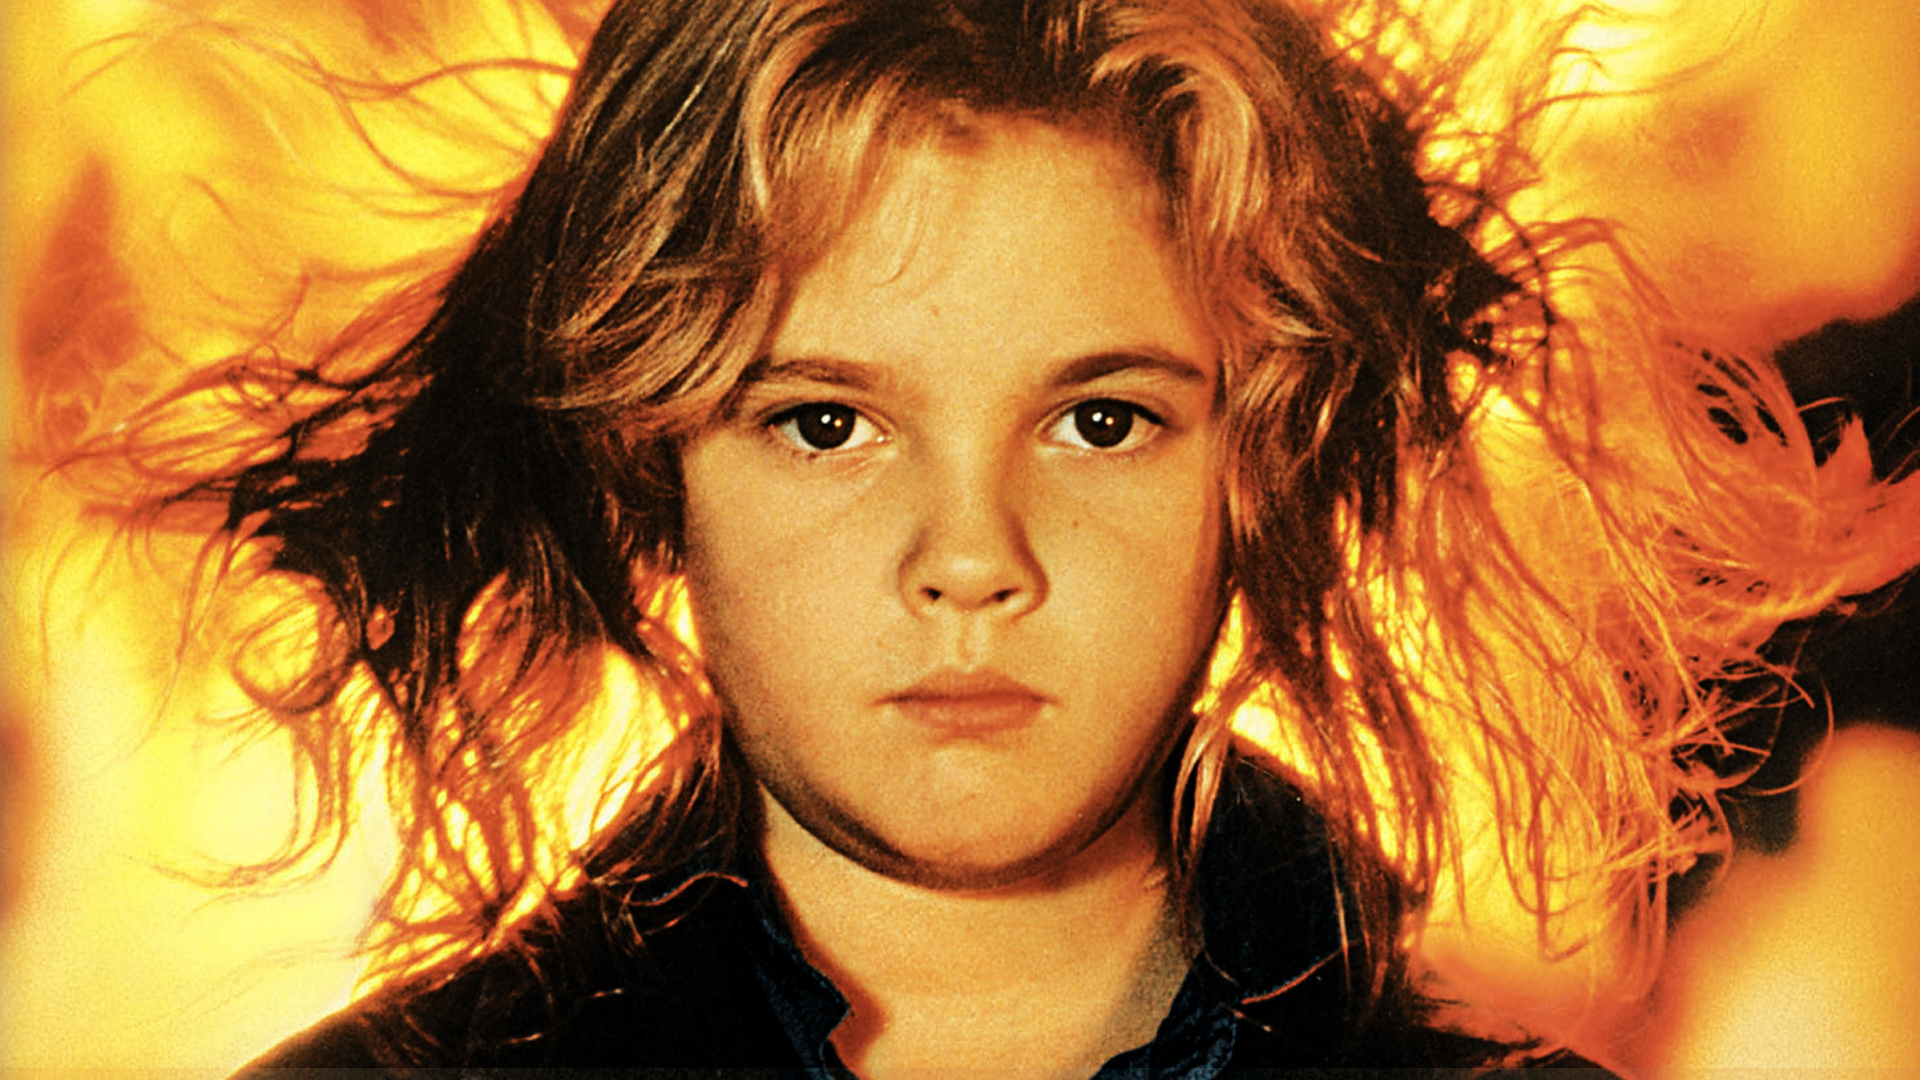 a review of the film firestarter